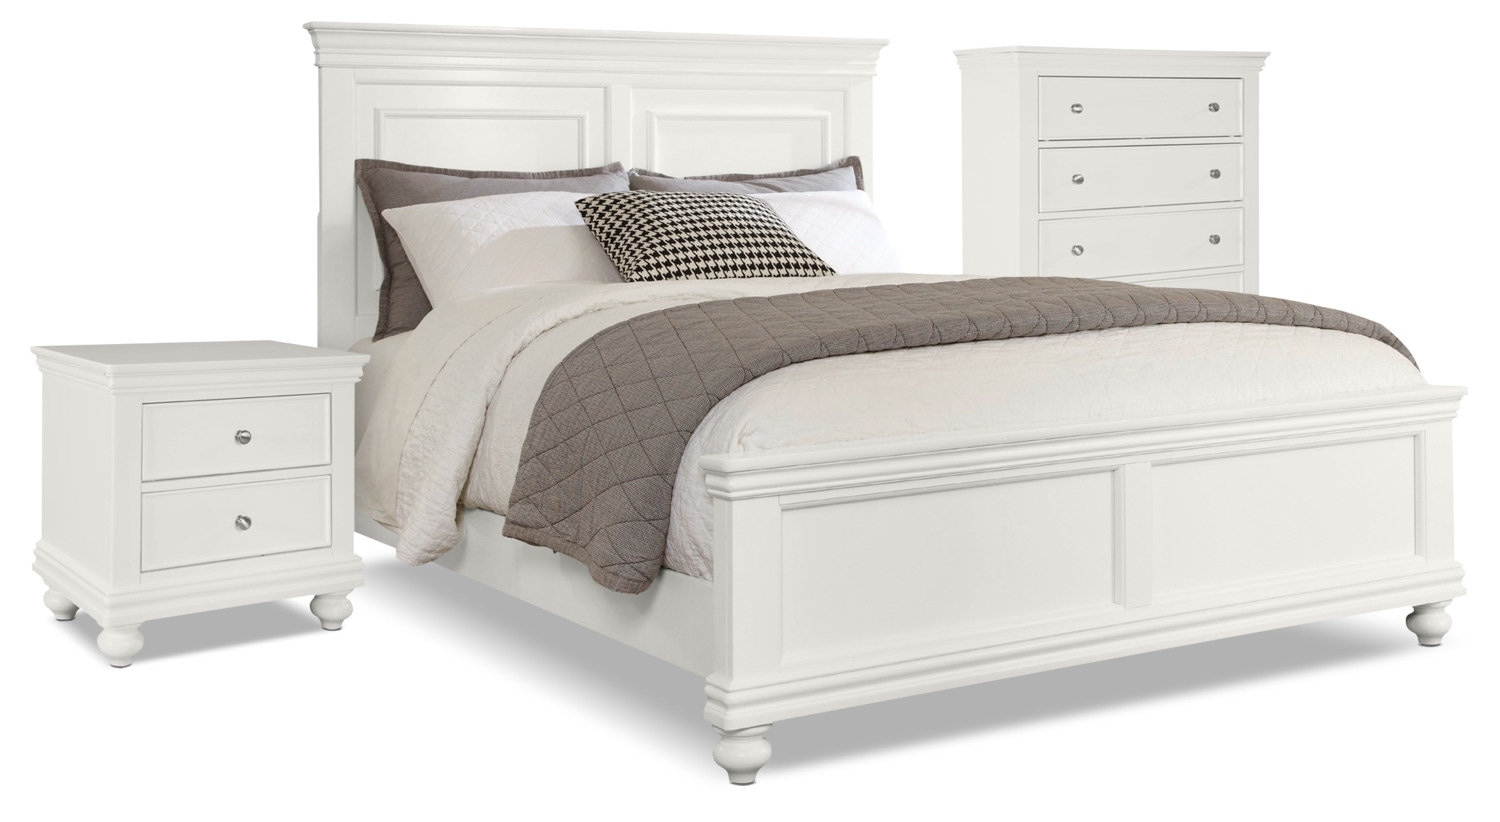 Ens. de chambre à coucher Bridgeport 5pcs avec grand lit, commode verticale, table de nuit - blanc